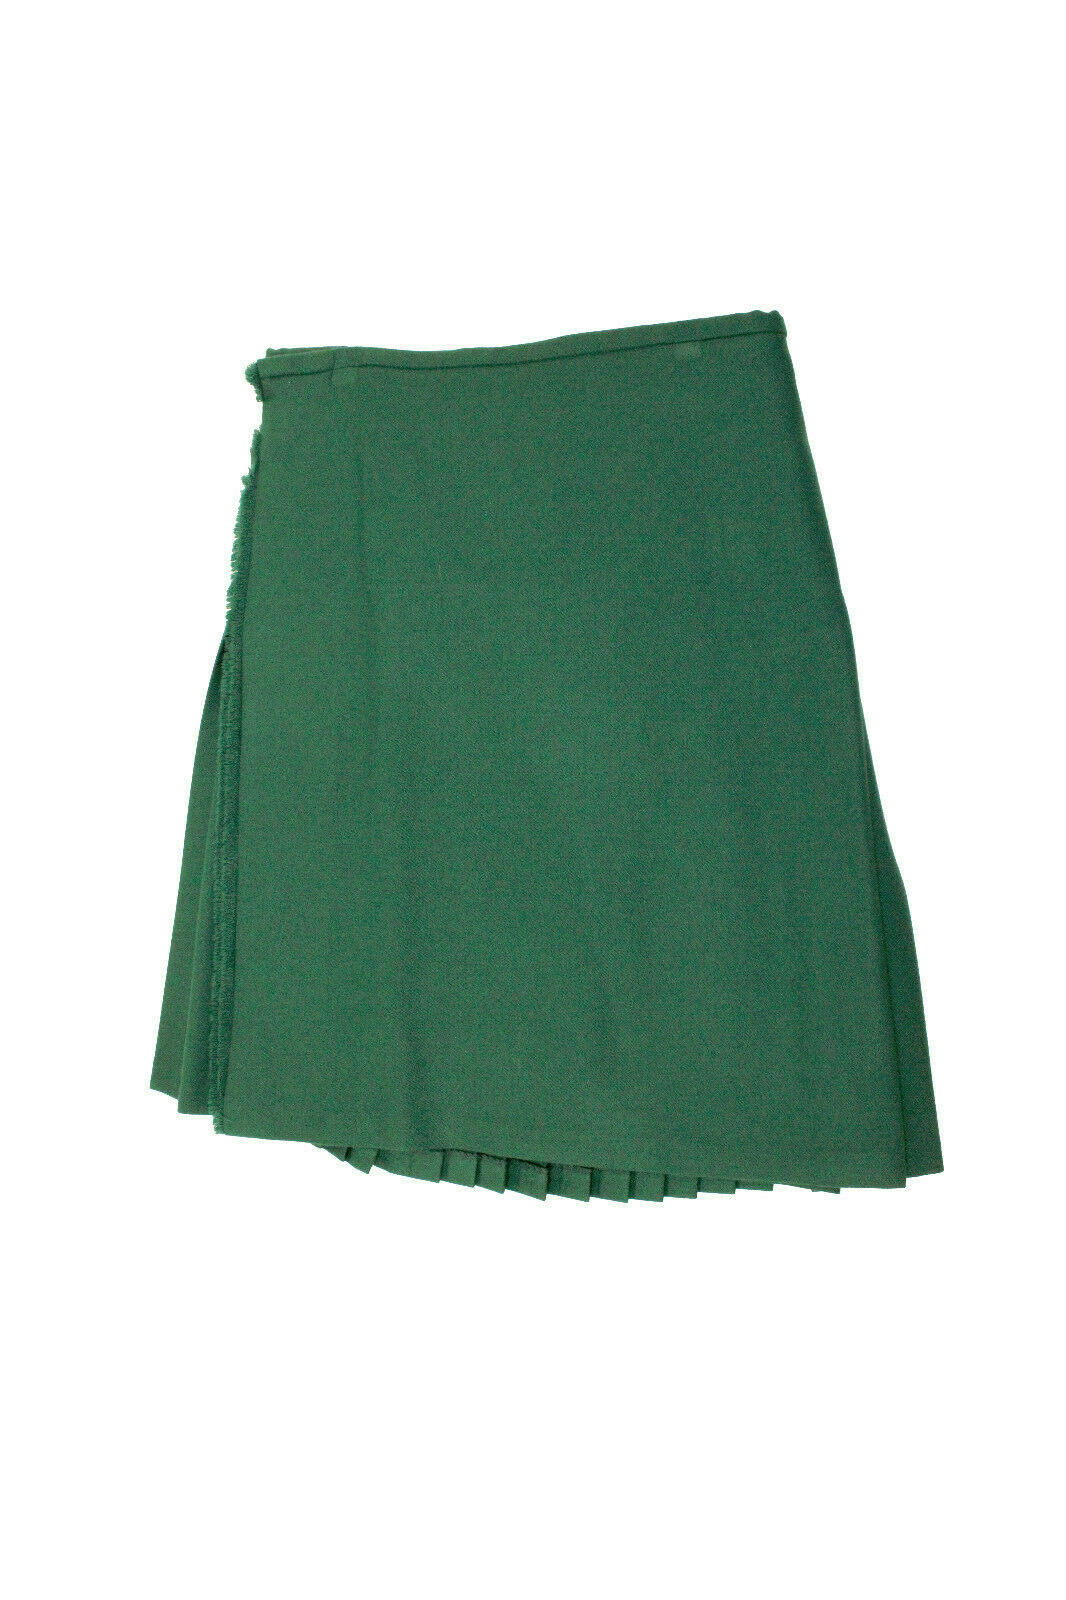 NEW Green Oban 16oz 6 Yard Wool Kilt - clear out at - limited sizes